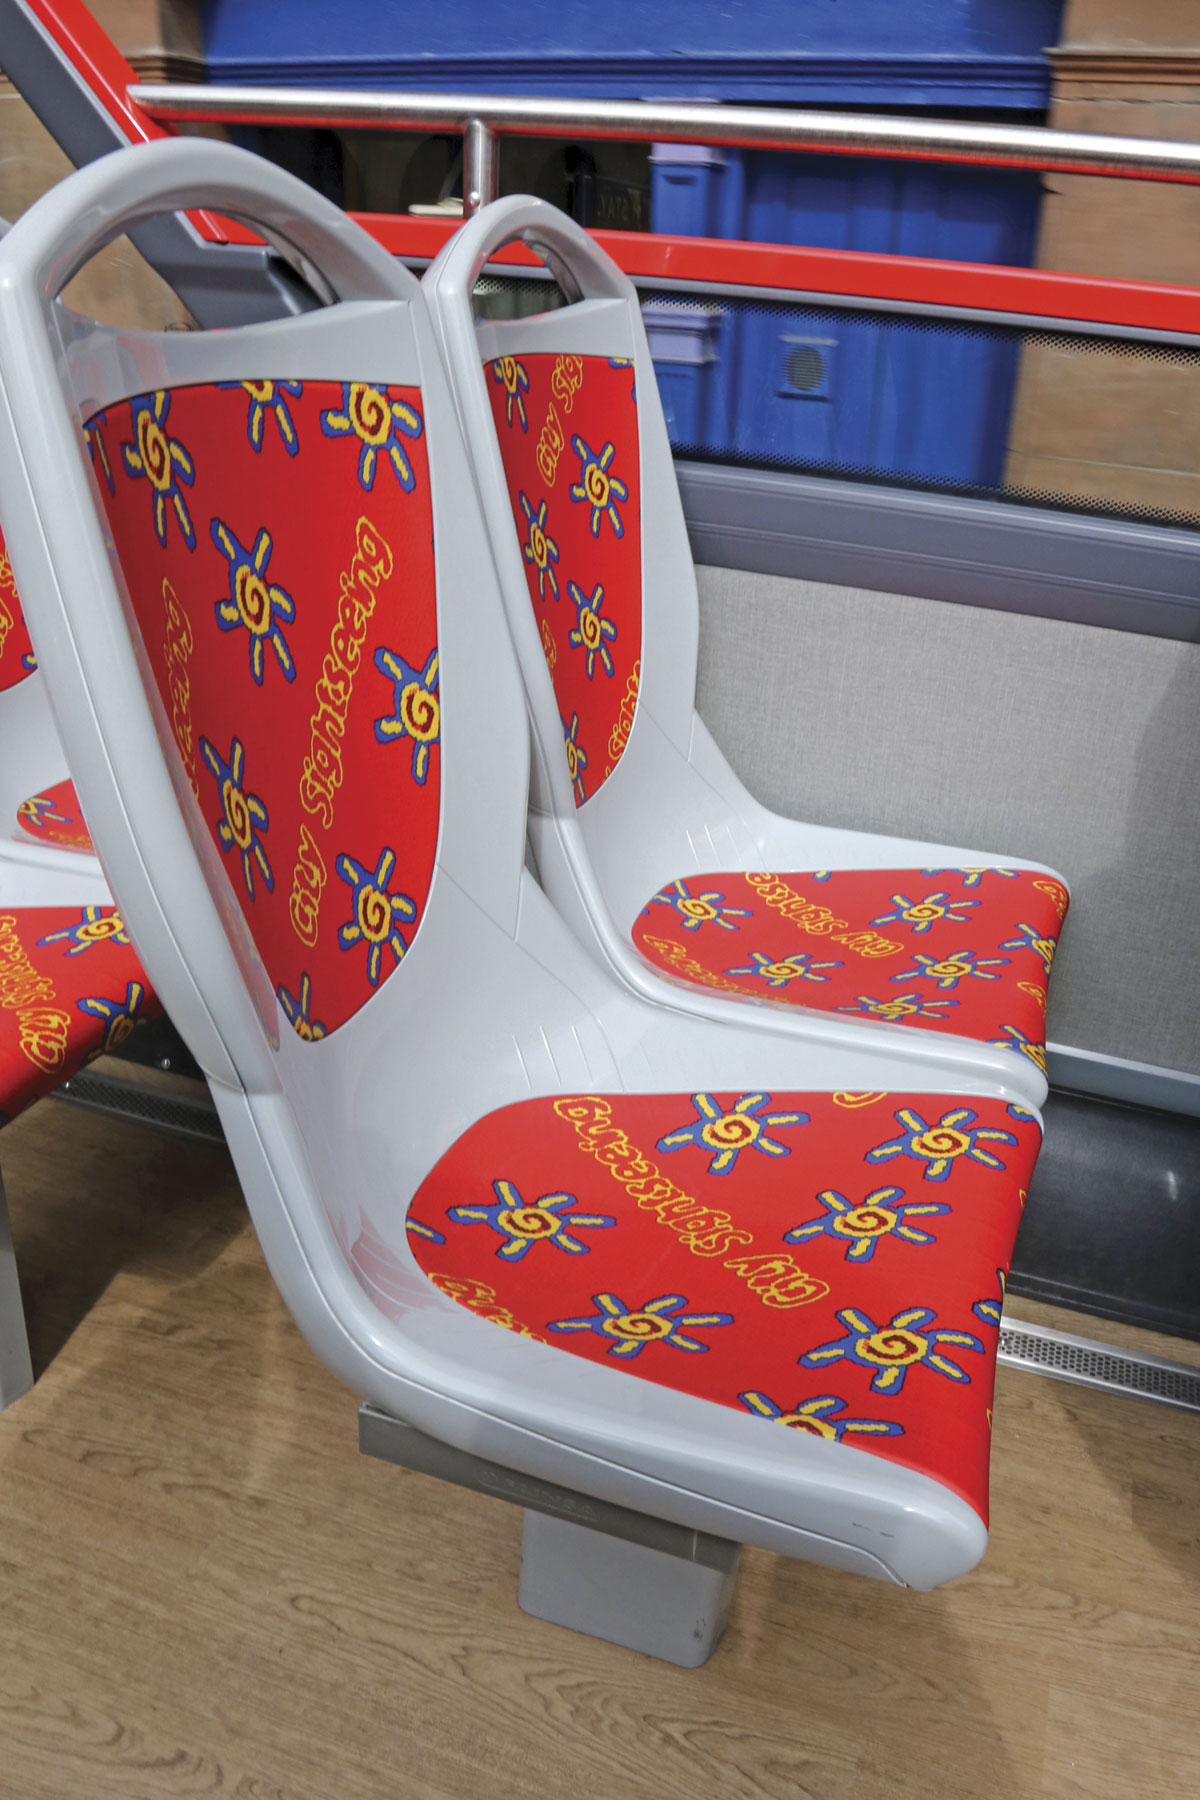 The waterproof Fainsa Metropolis seats from Compin have coloured E-Leather inserts appropriate to the vehicle's tour branding. This is the City Sightseeing version